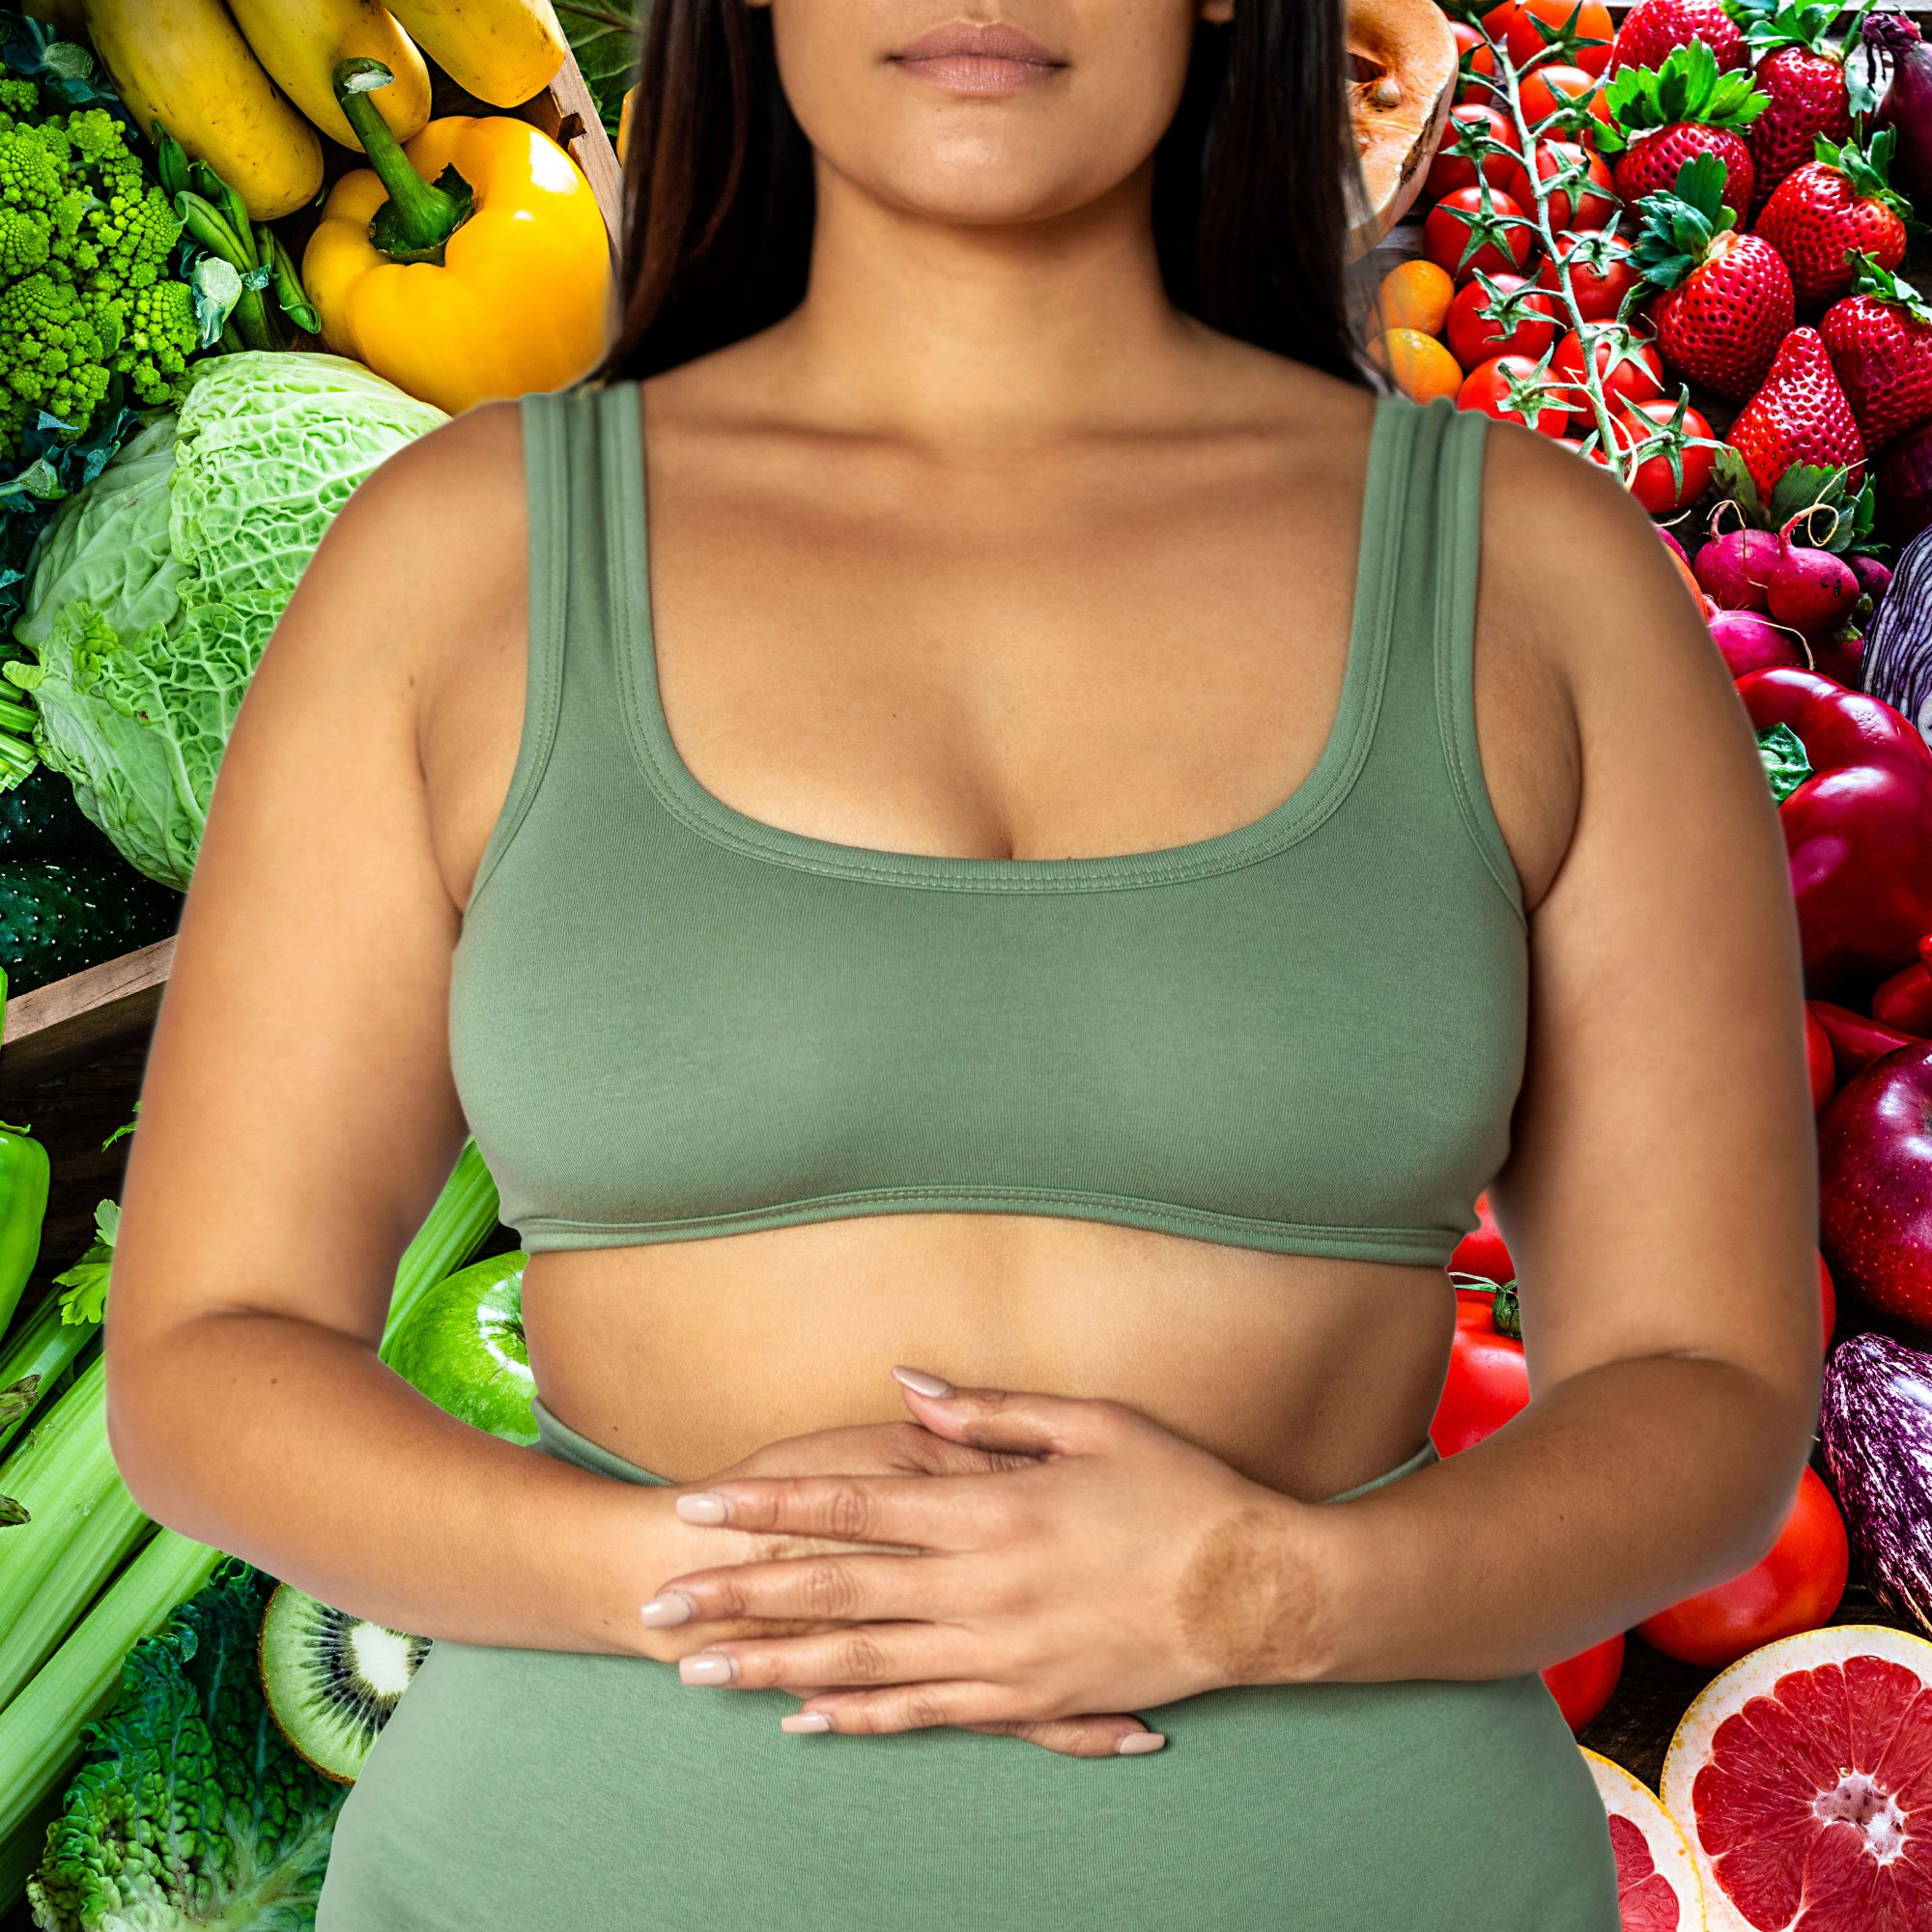 Woman Holding Stomach With Food Background